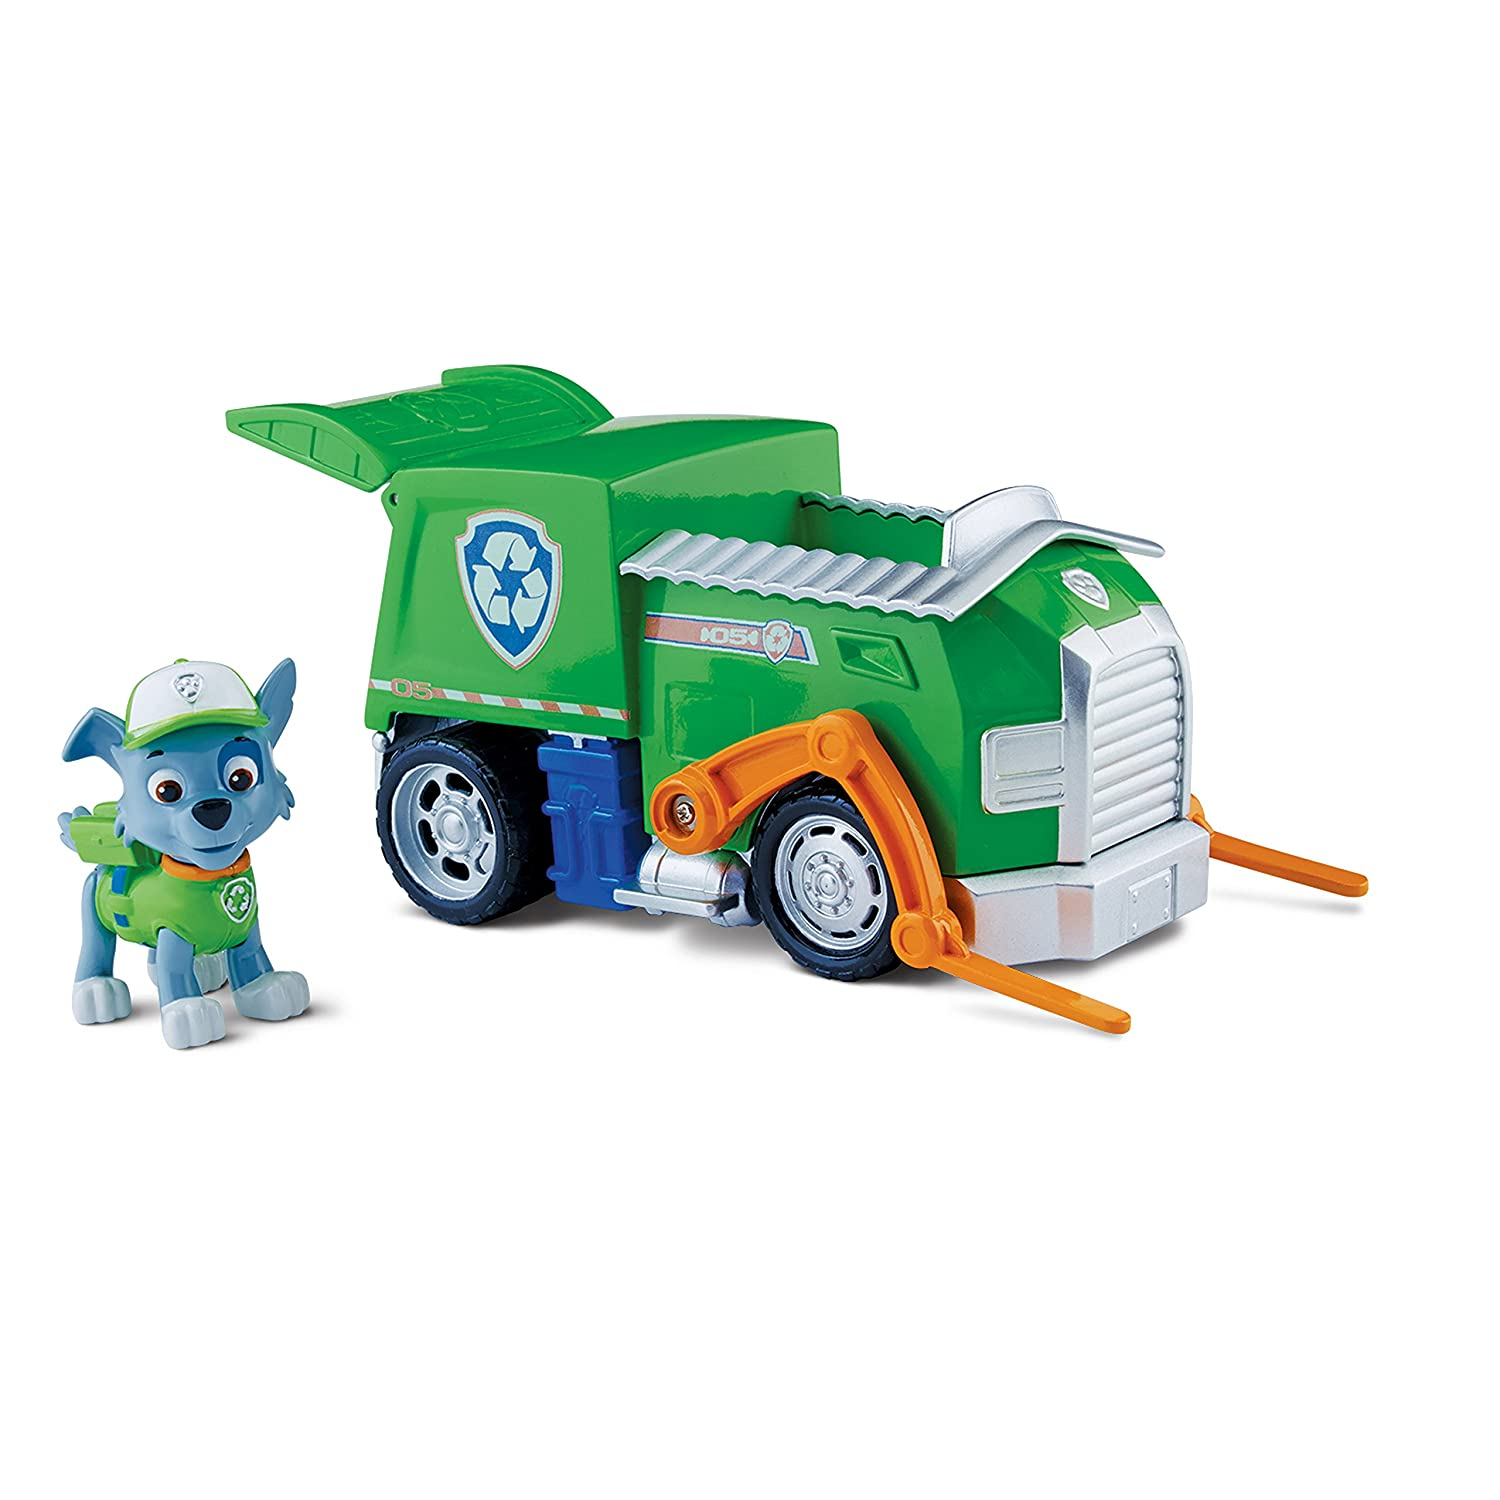 Paw Patrol 20065127 Rocky's Recycling Truck, Vehicle and Figure 20065127-6024018